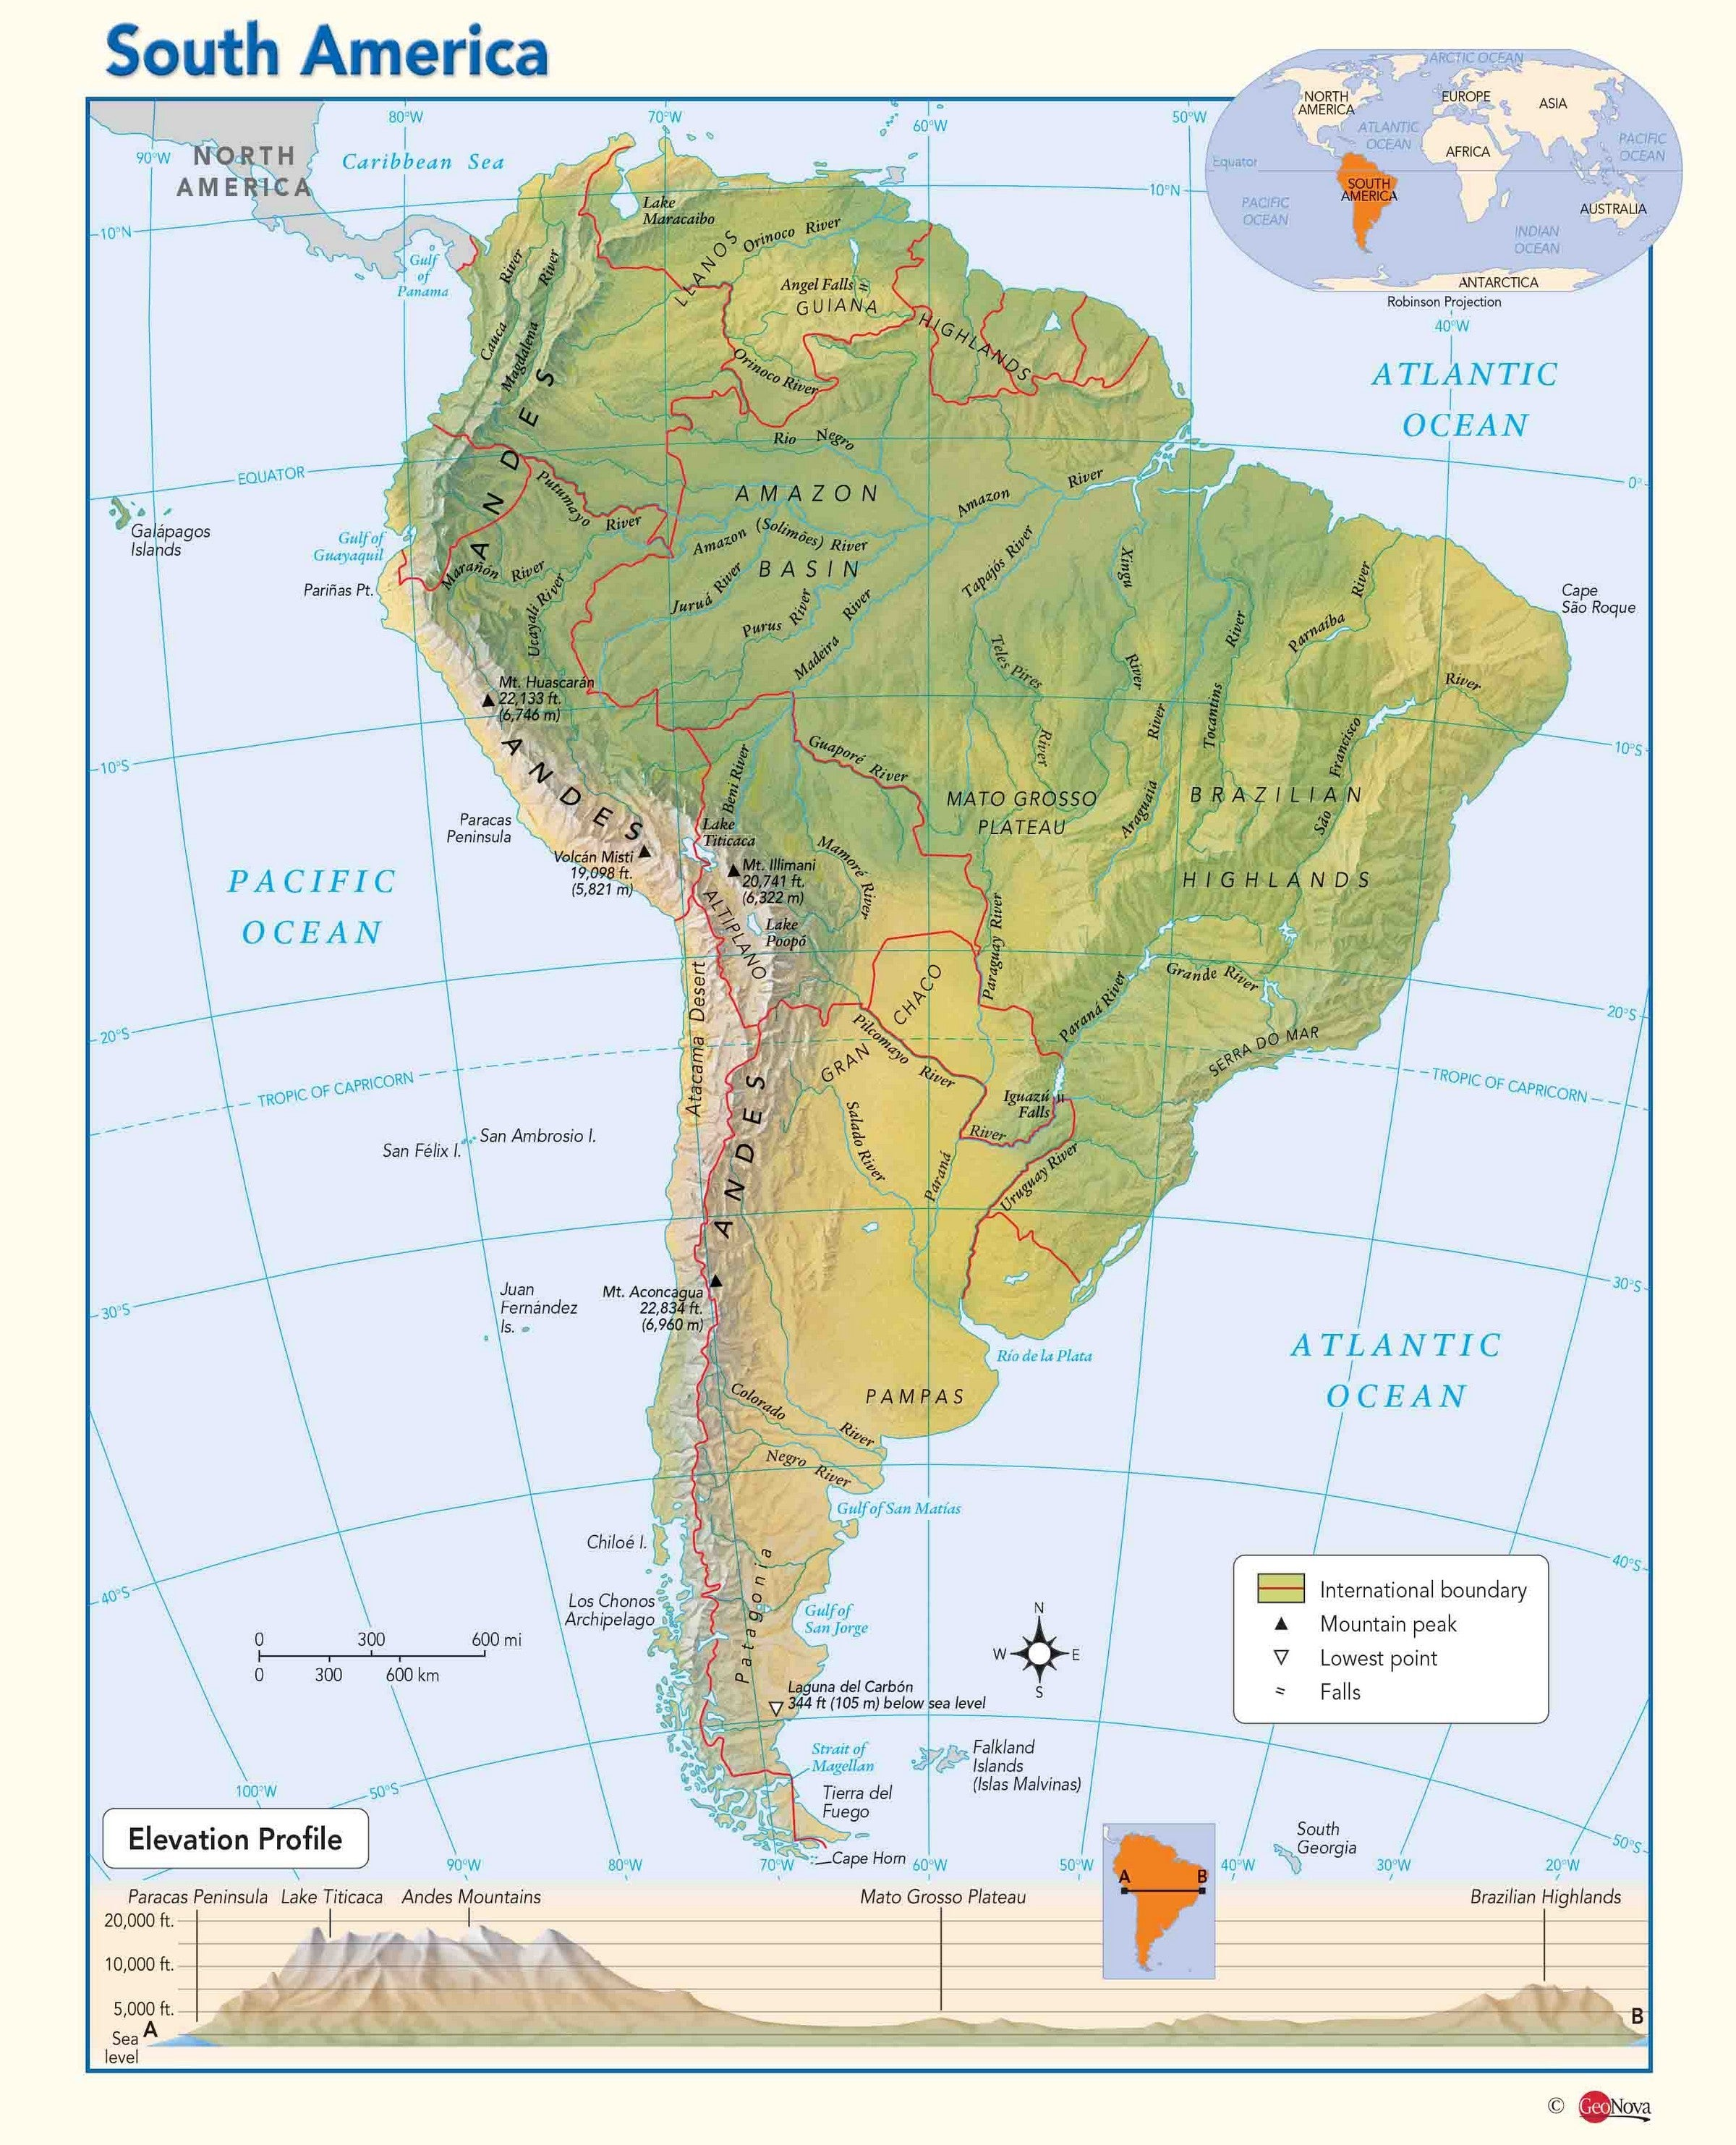 Physical Map of South America on road map biology, features south america, destination south america, road map scandinavia, library south america, camping south america, driving in columbia south america, road map brazil, road map buenos aires, hotels south america, water south america, trip south america, road map anguilla, road map zimbabwe, tourist south america, landlocked country south america, lake nicaragua map central america, road map martinique, blog south america, road map suriname,